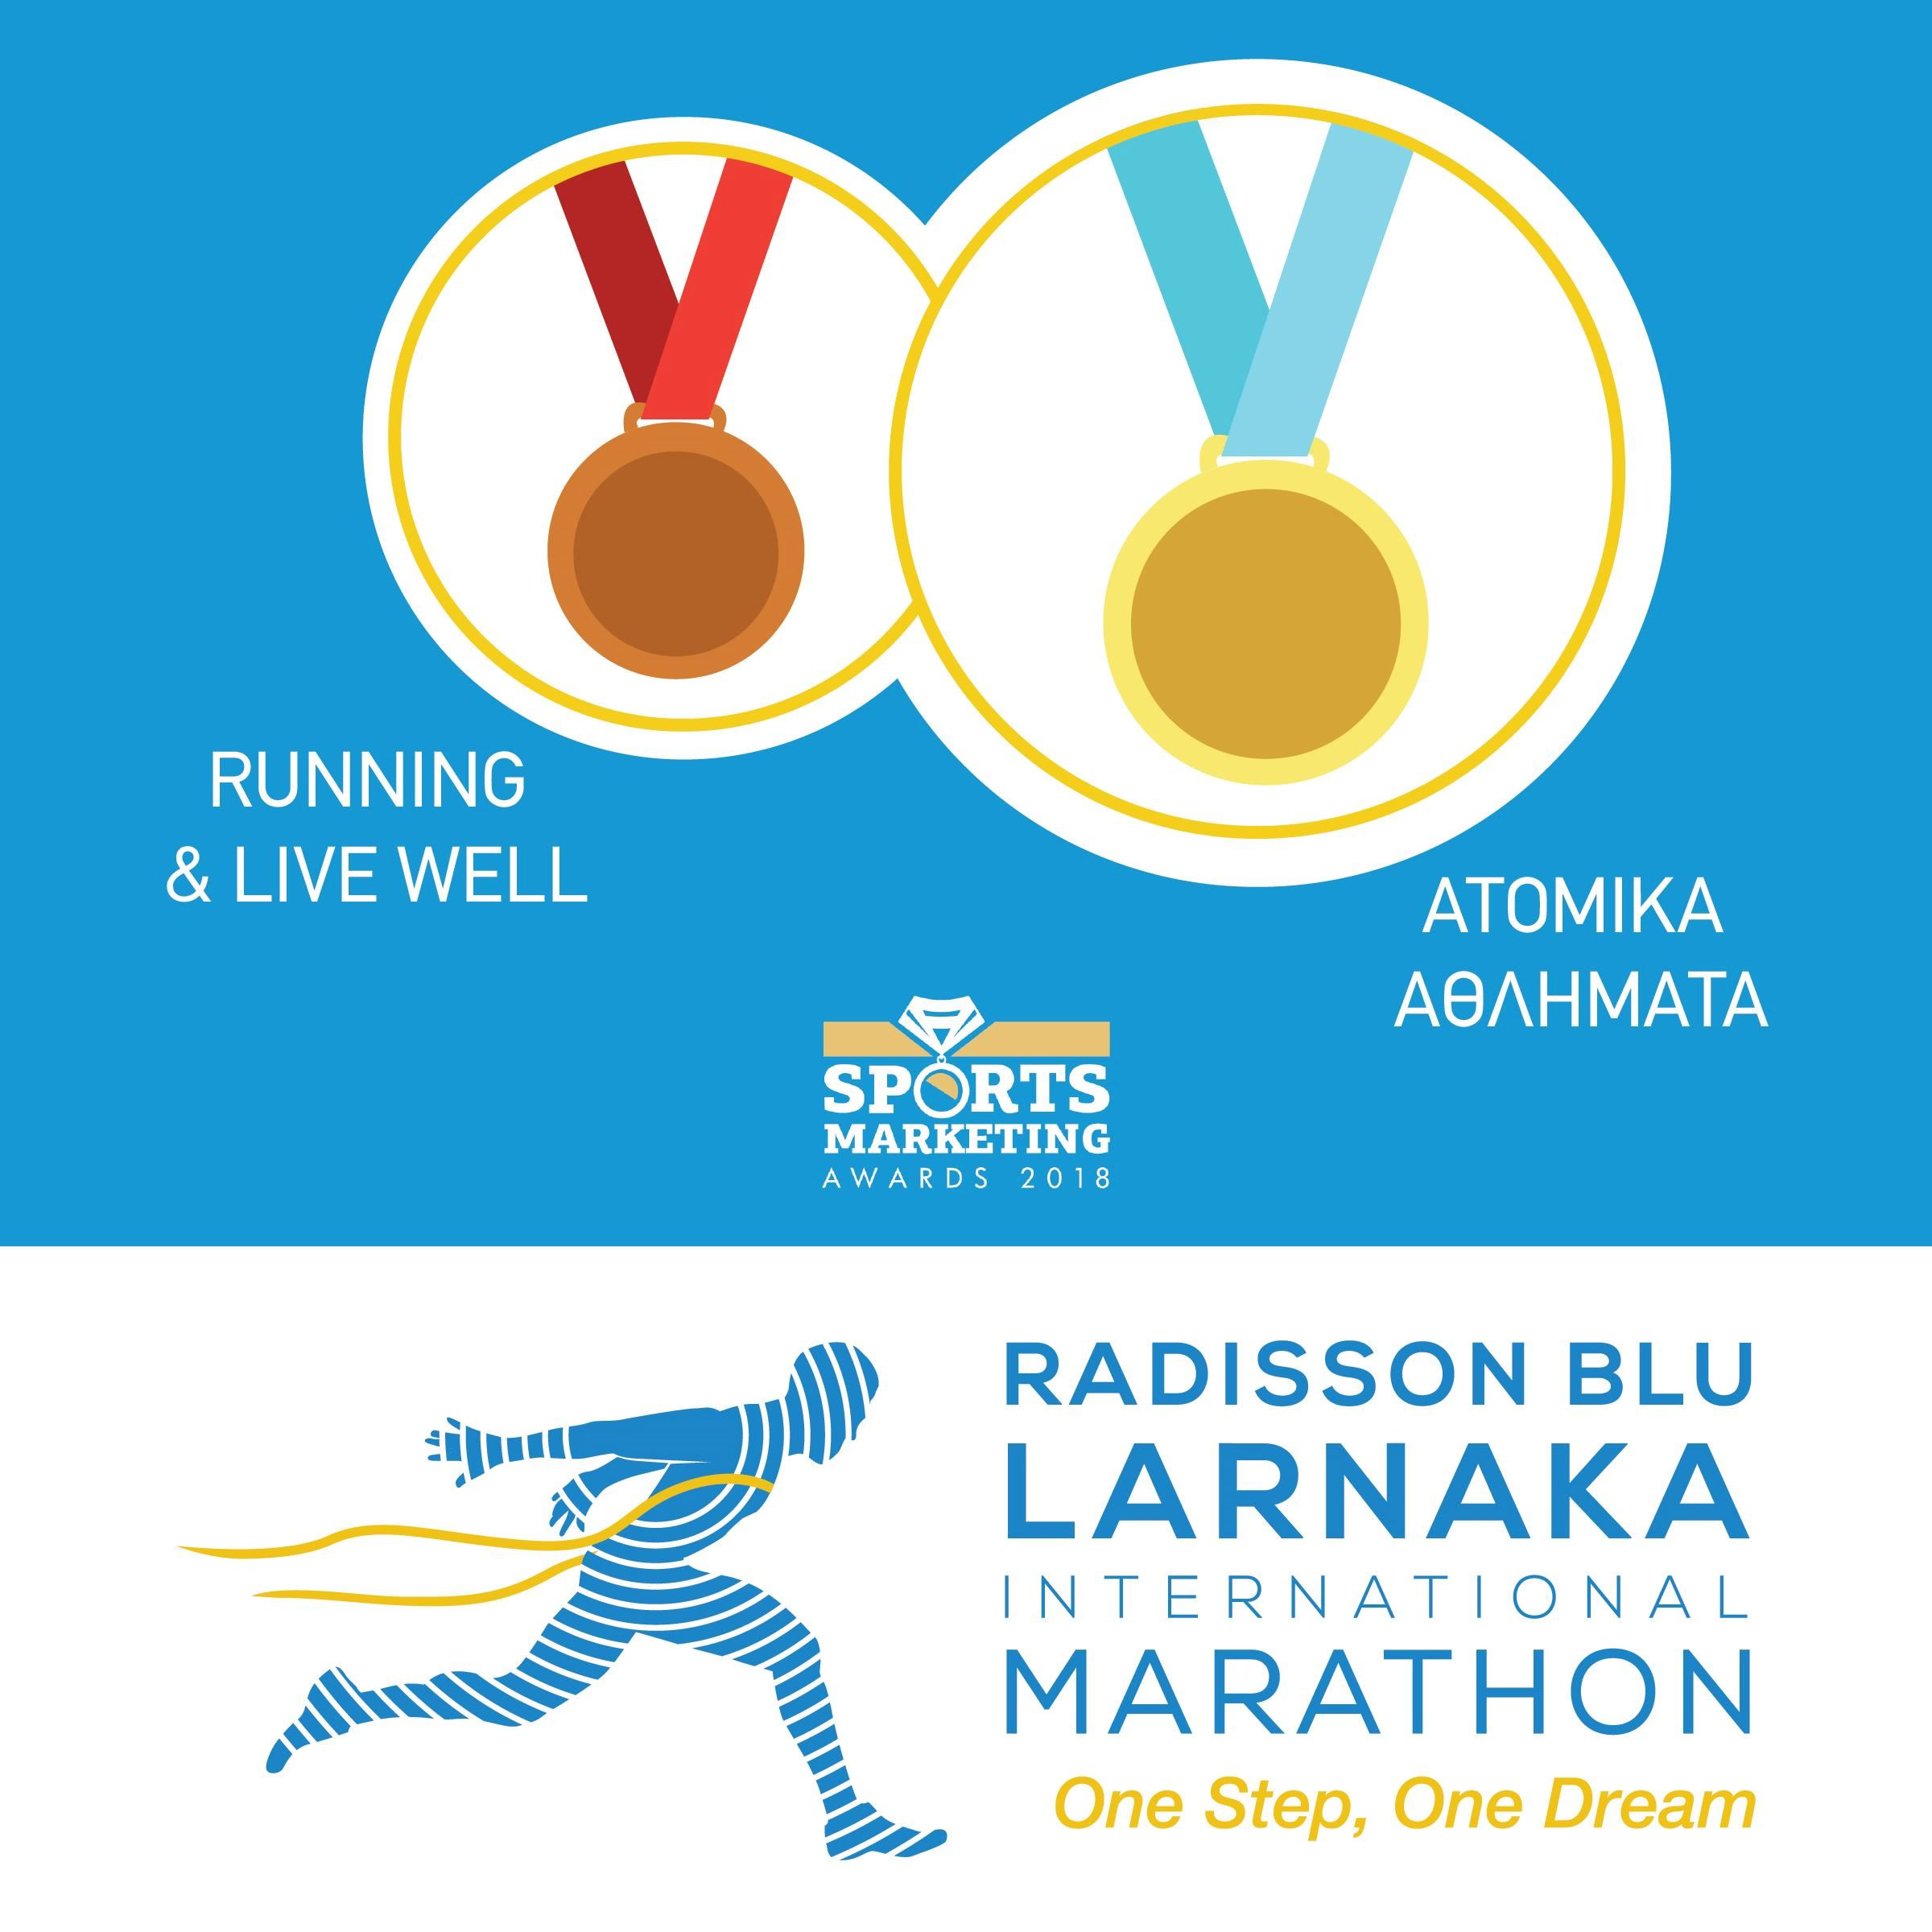 The Radisson Blu Larnaka International Marathon reached the top of the competition for quality of the event, and is awarded with two prizes.